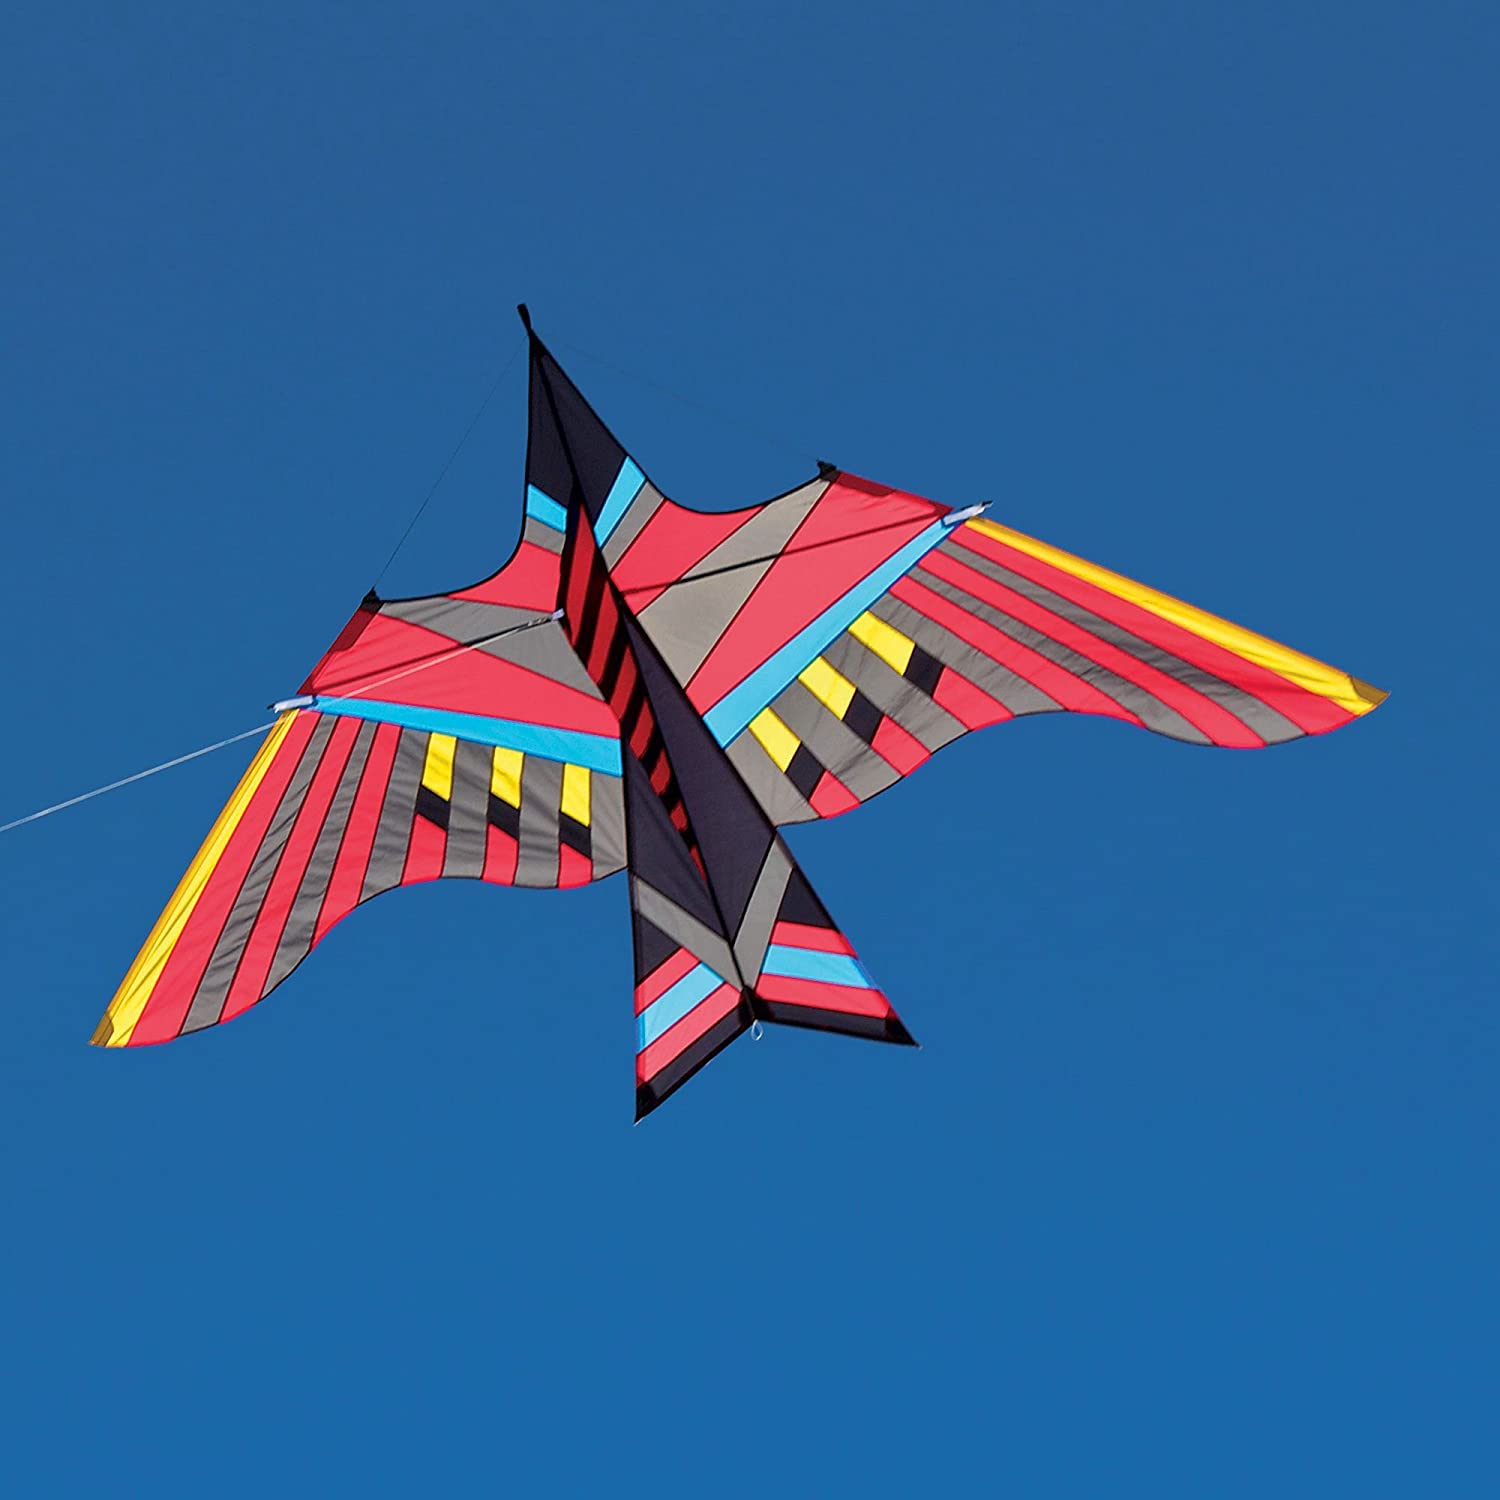 Into The Wind George Peters Cloud Bird Kite Ahi Toys Games Kites Wind Spinners